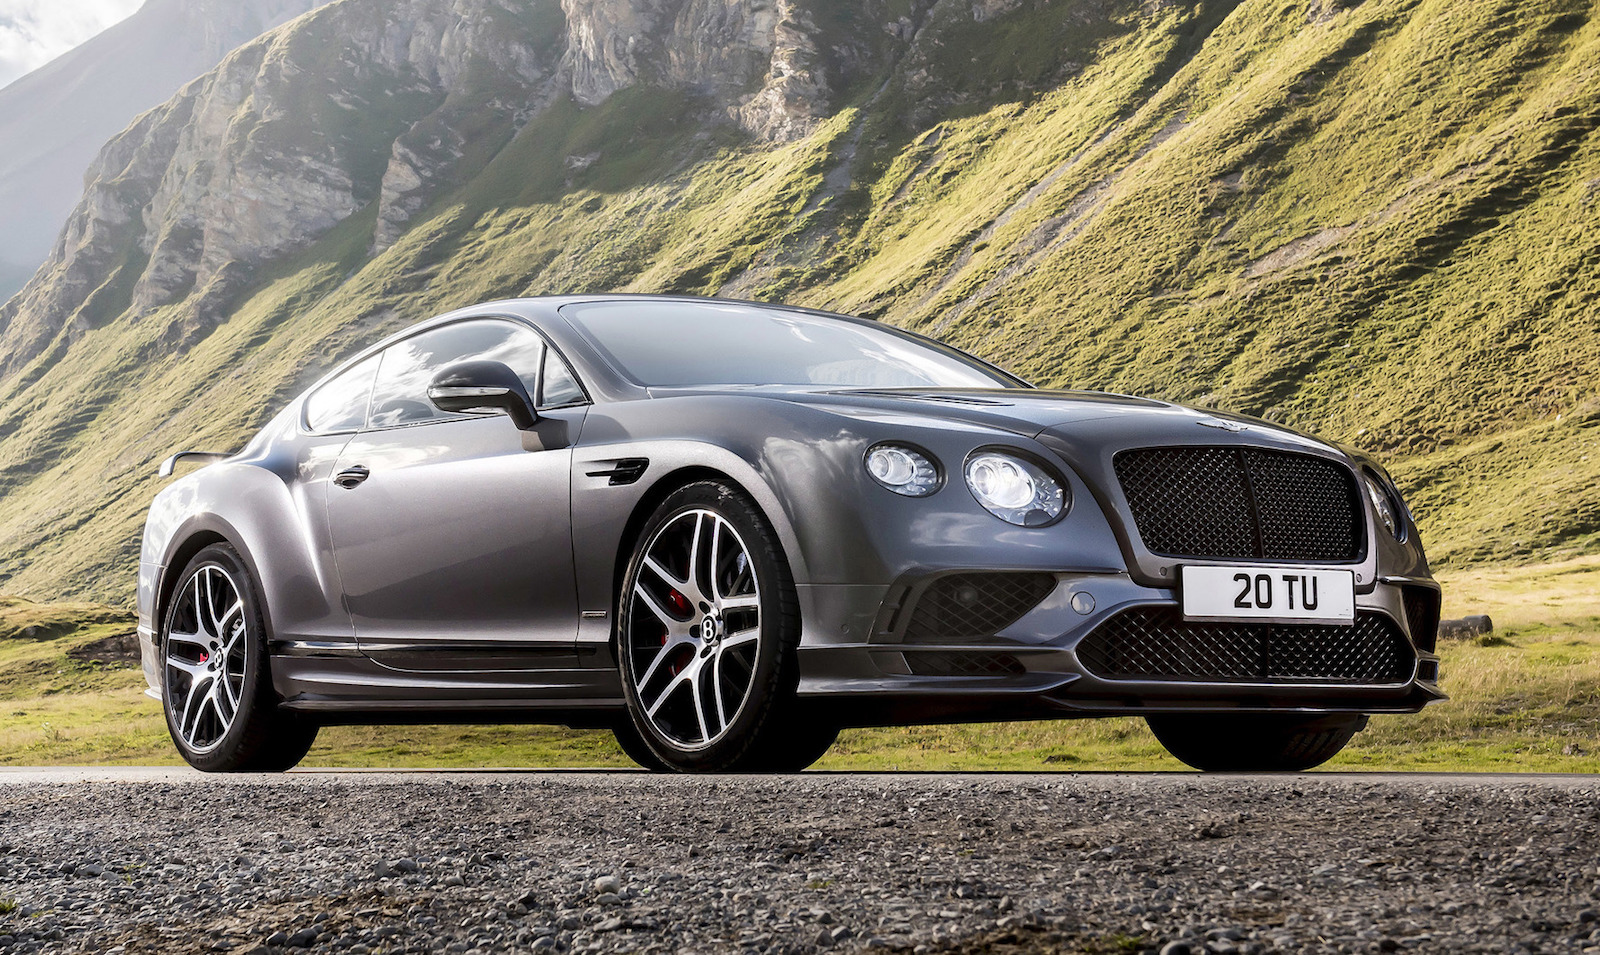 Bentley: 'Fastest Four-Seater' Car Ever Made